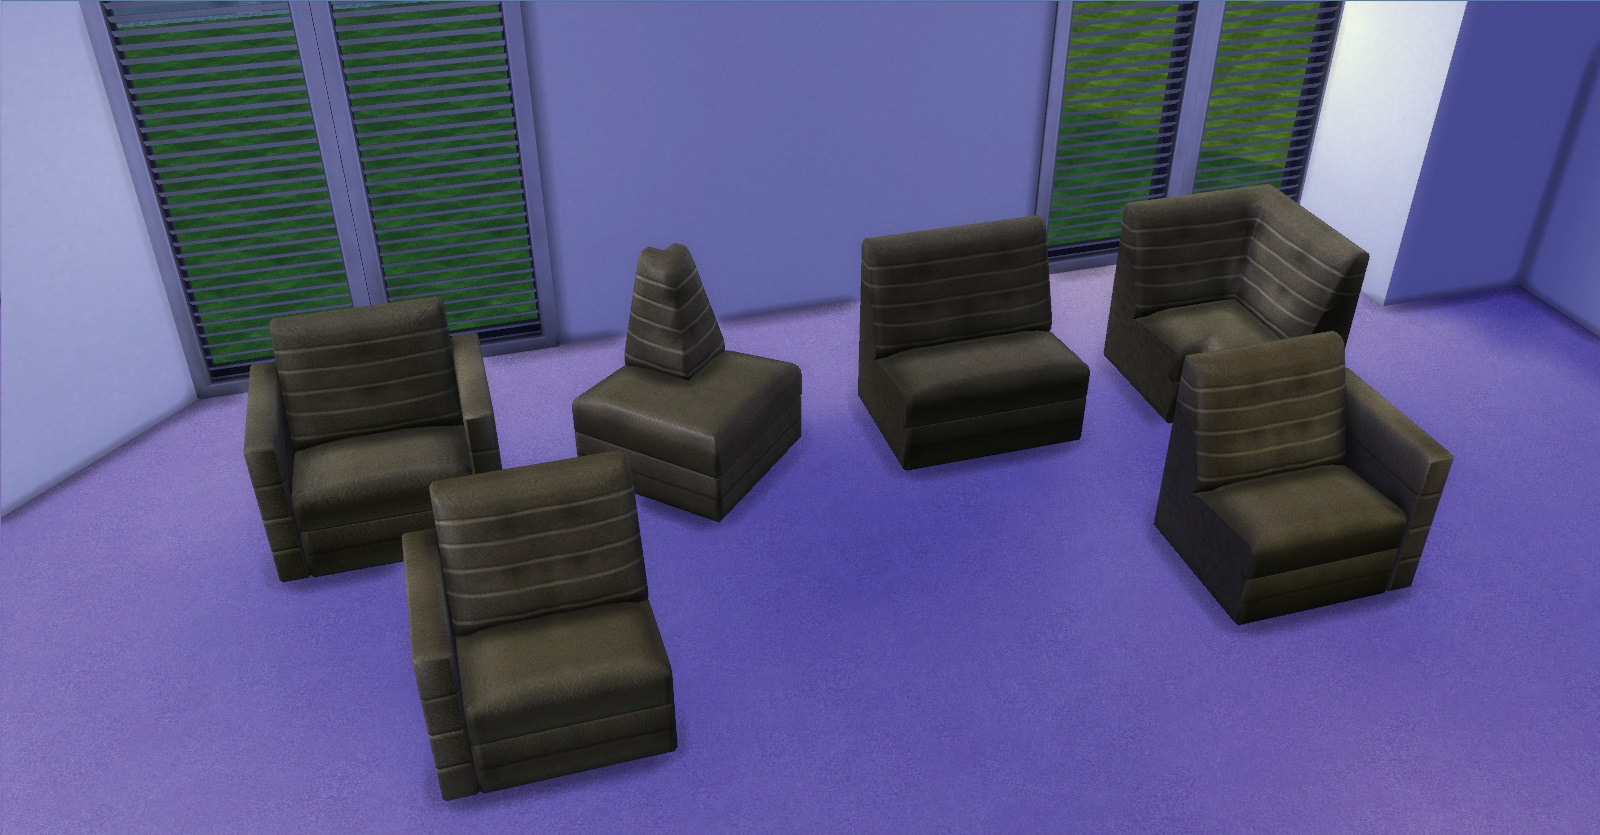 Since Its Not Possible Yet To Create A Sectional Chair Or Sofa For The Game Each One Serves As Living And Can All Be Joined